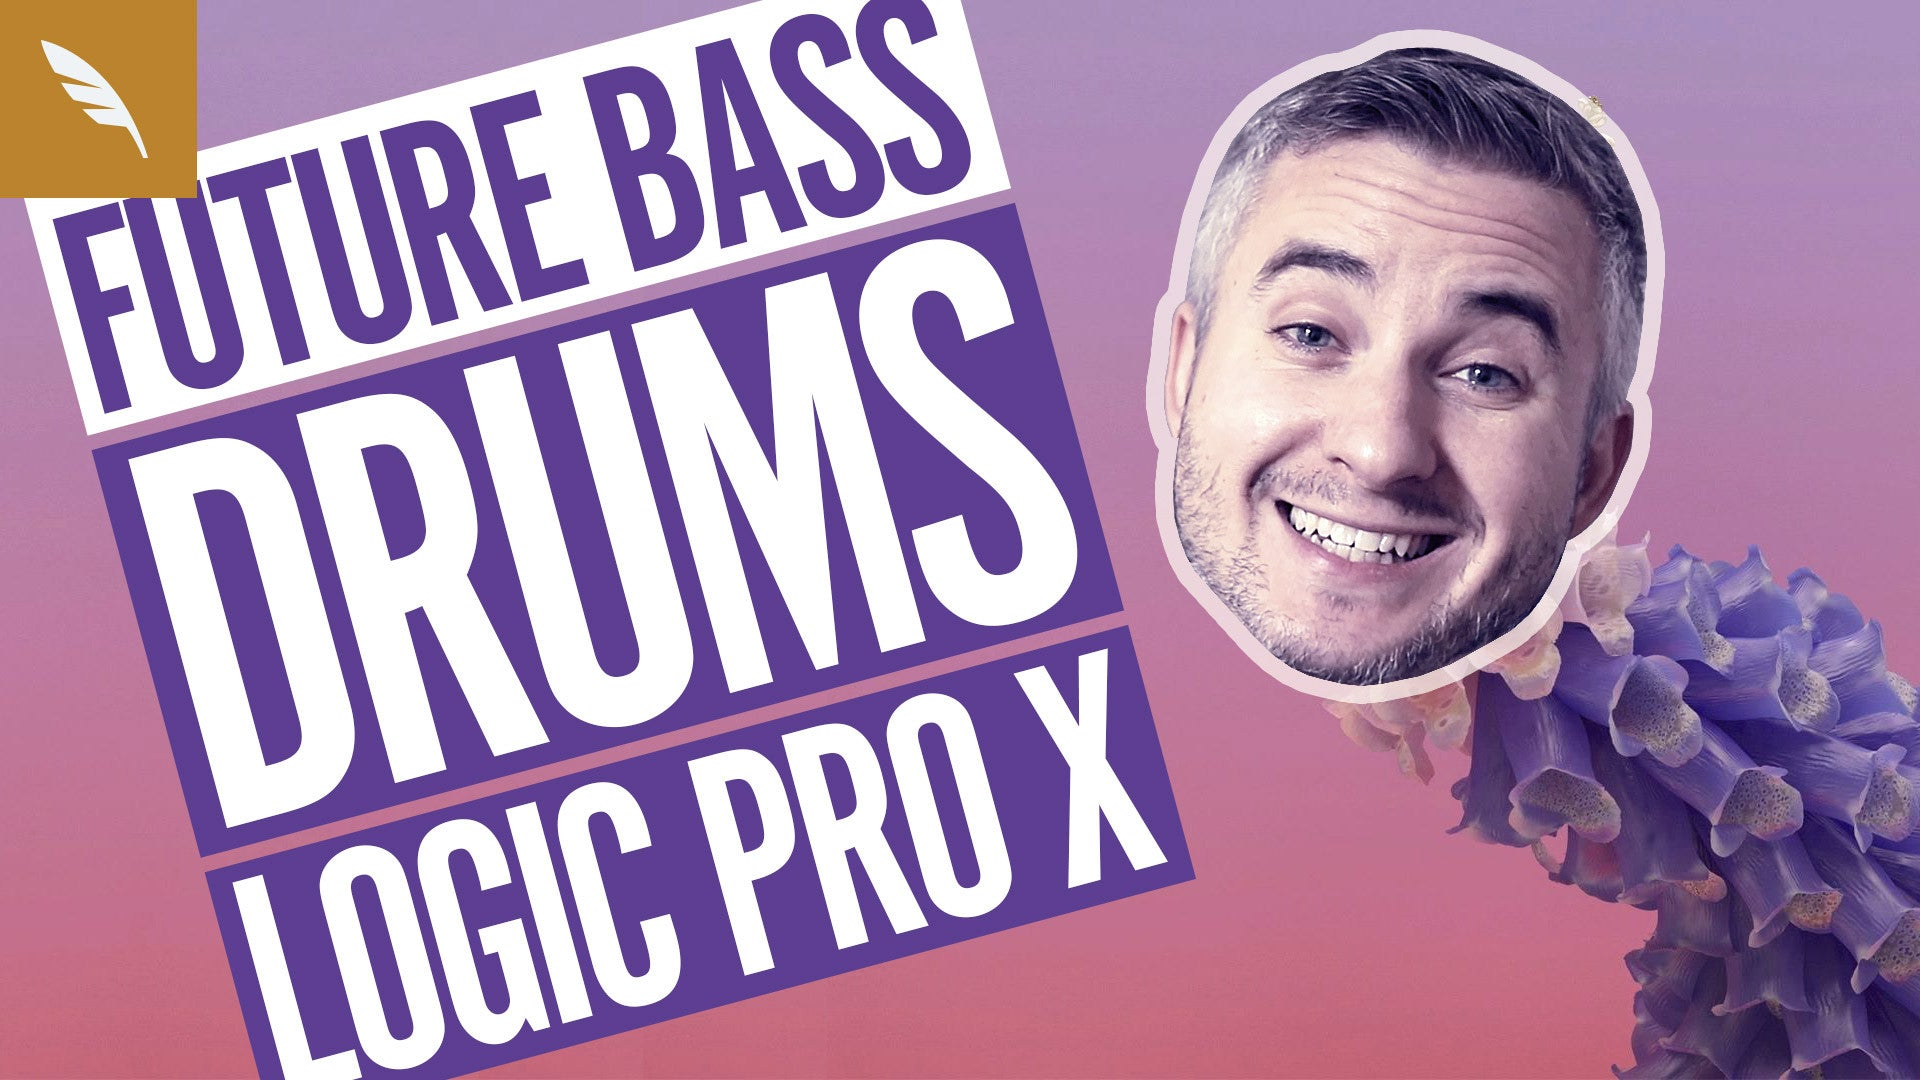 How To Create Future Bass In Logic Pro X